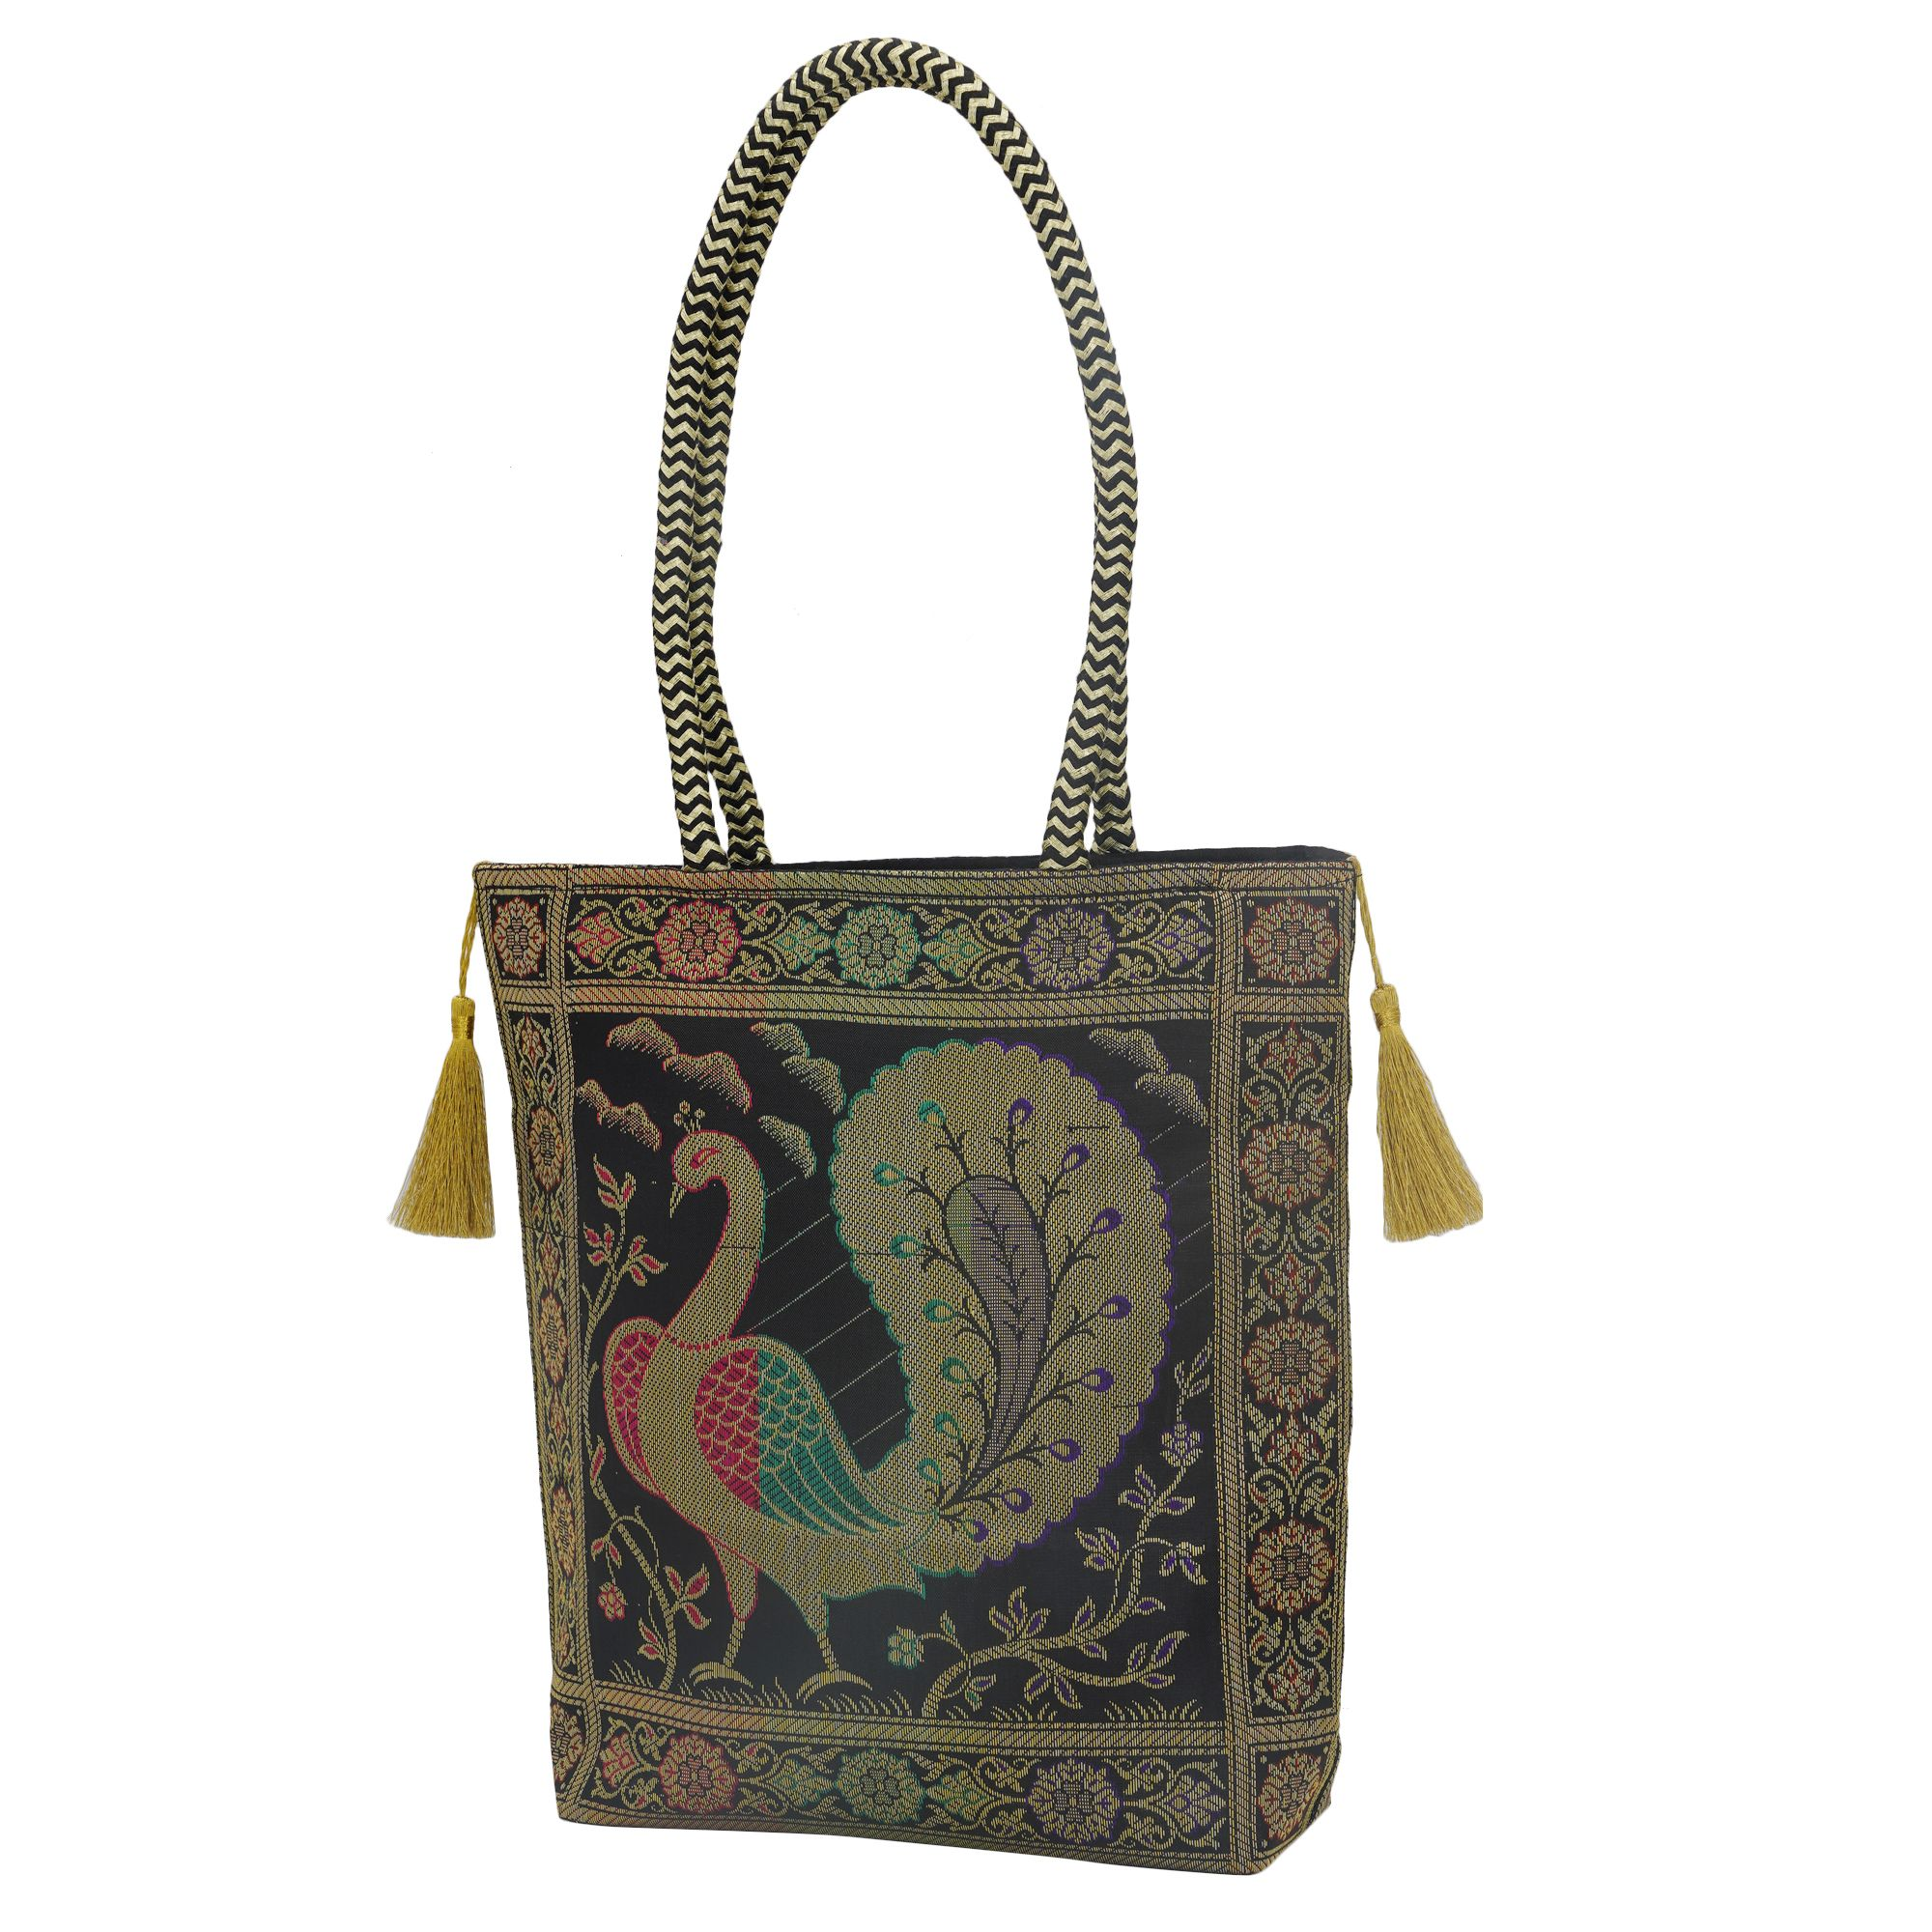 Handloom Black Banarasi Brocade bag with Golden Tassels in Peacock Motif 0